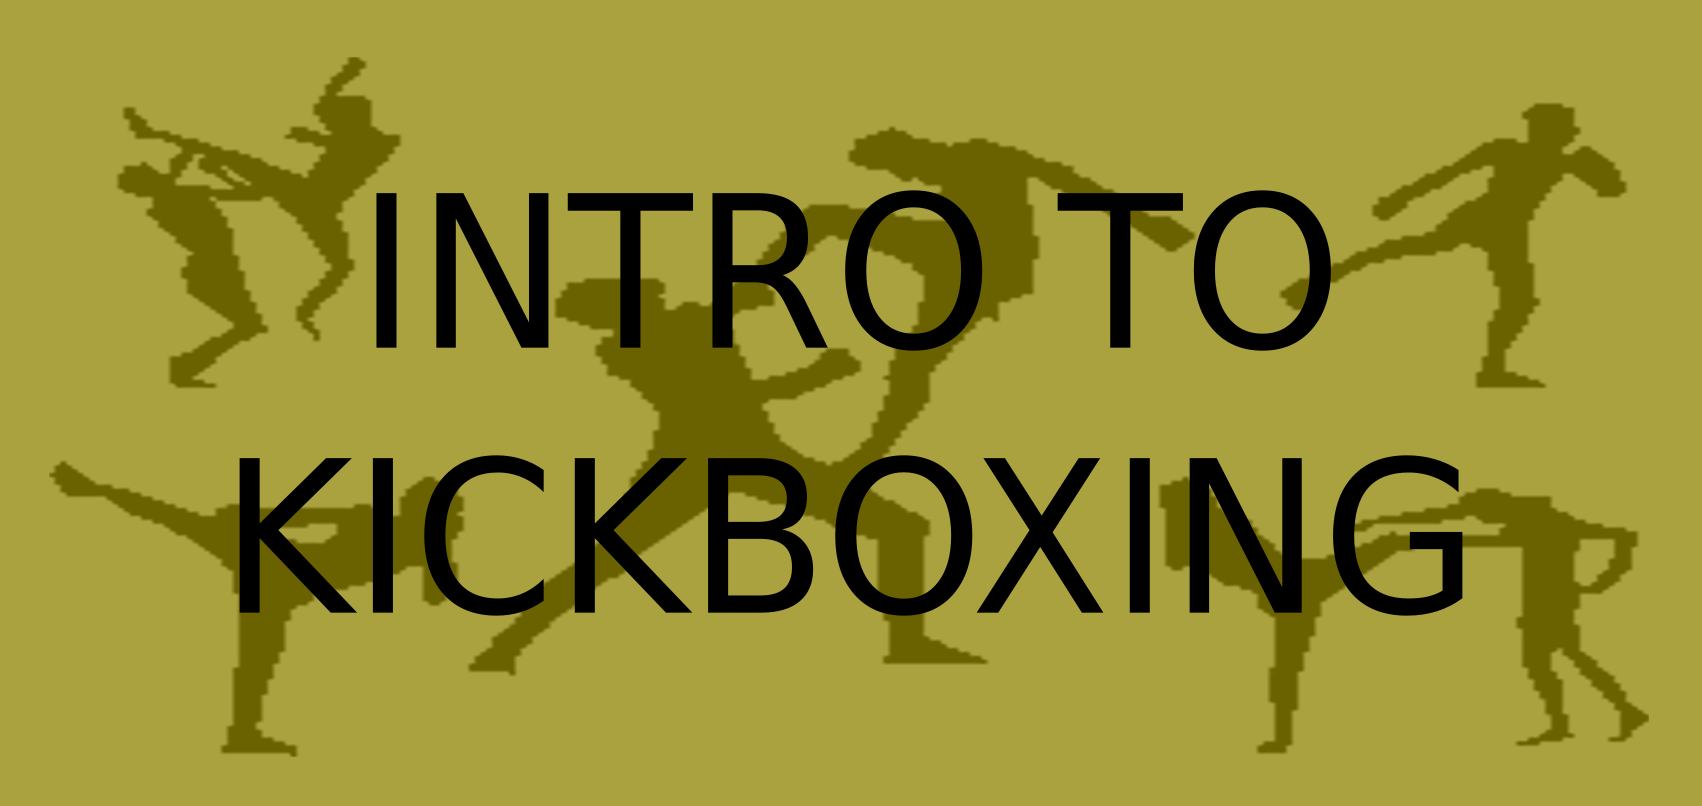 Kickboxing introductory Offer